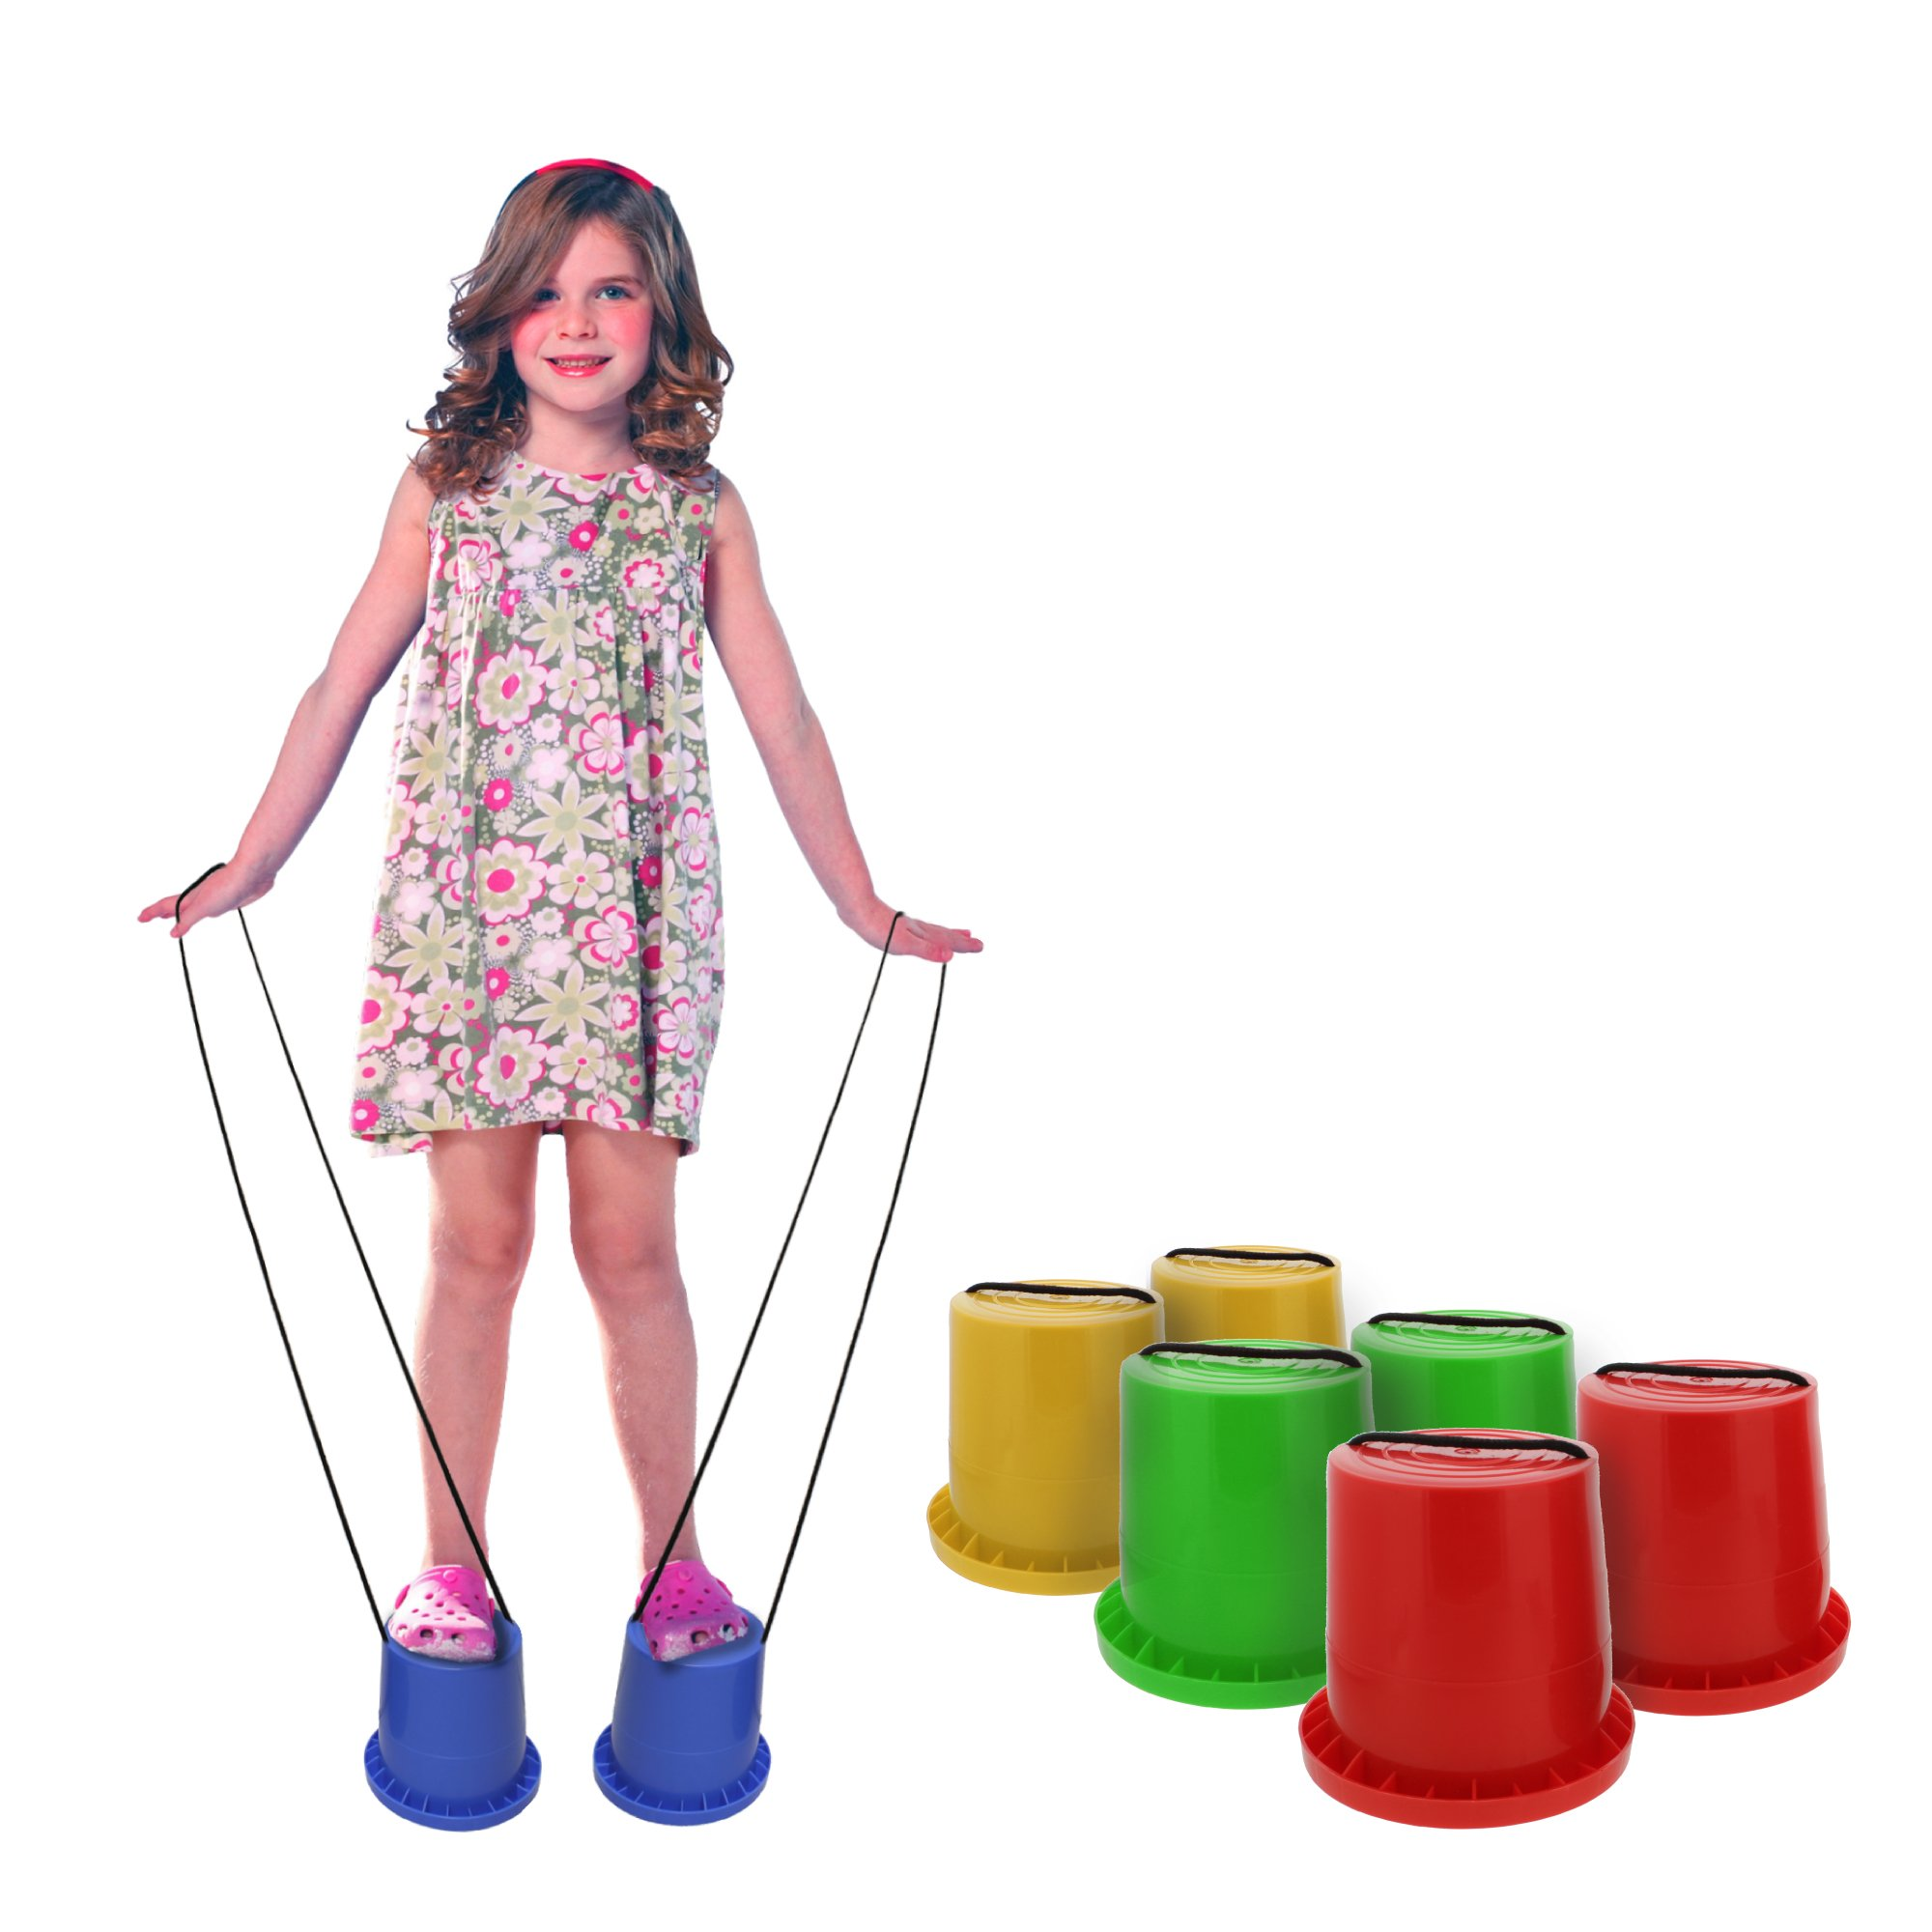 Get Out! Bucket Stilts in Blue – Kid Stilt 2-Pack (Pair) Walking Cups for Children – Kids Stepper Toy Walking Stilts